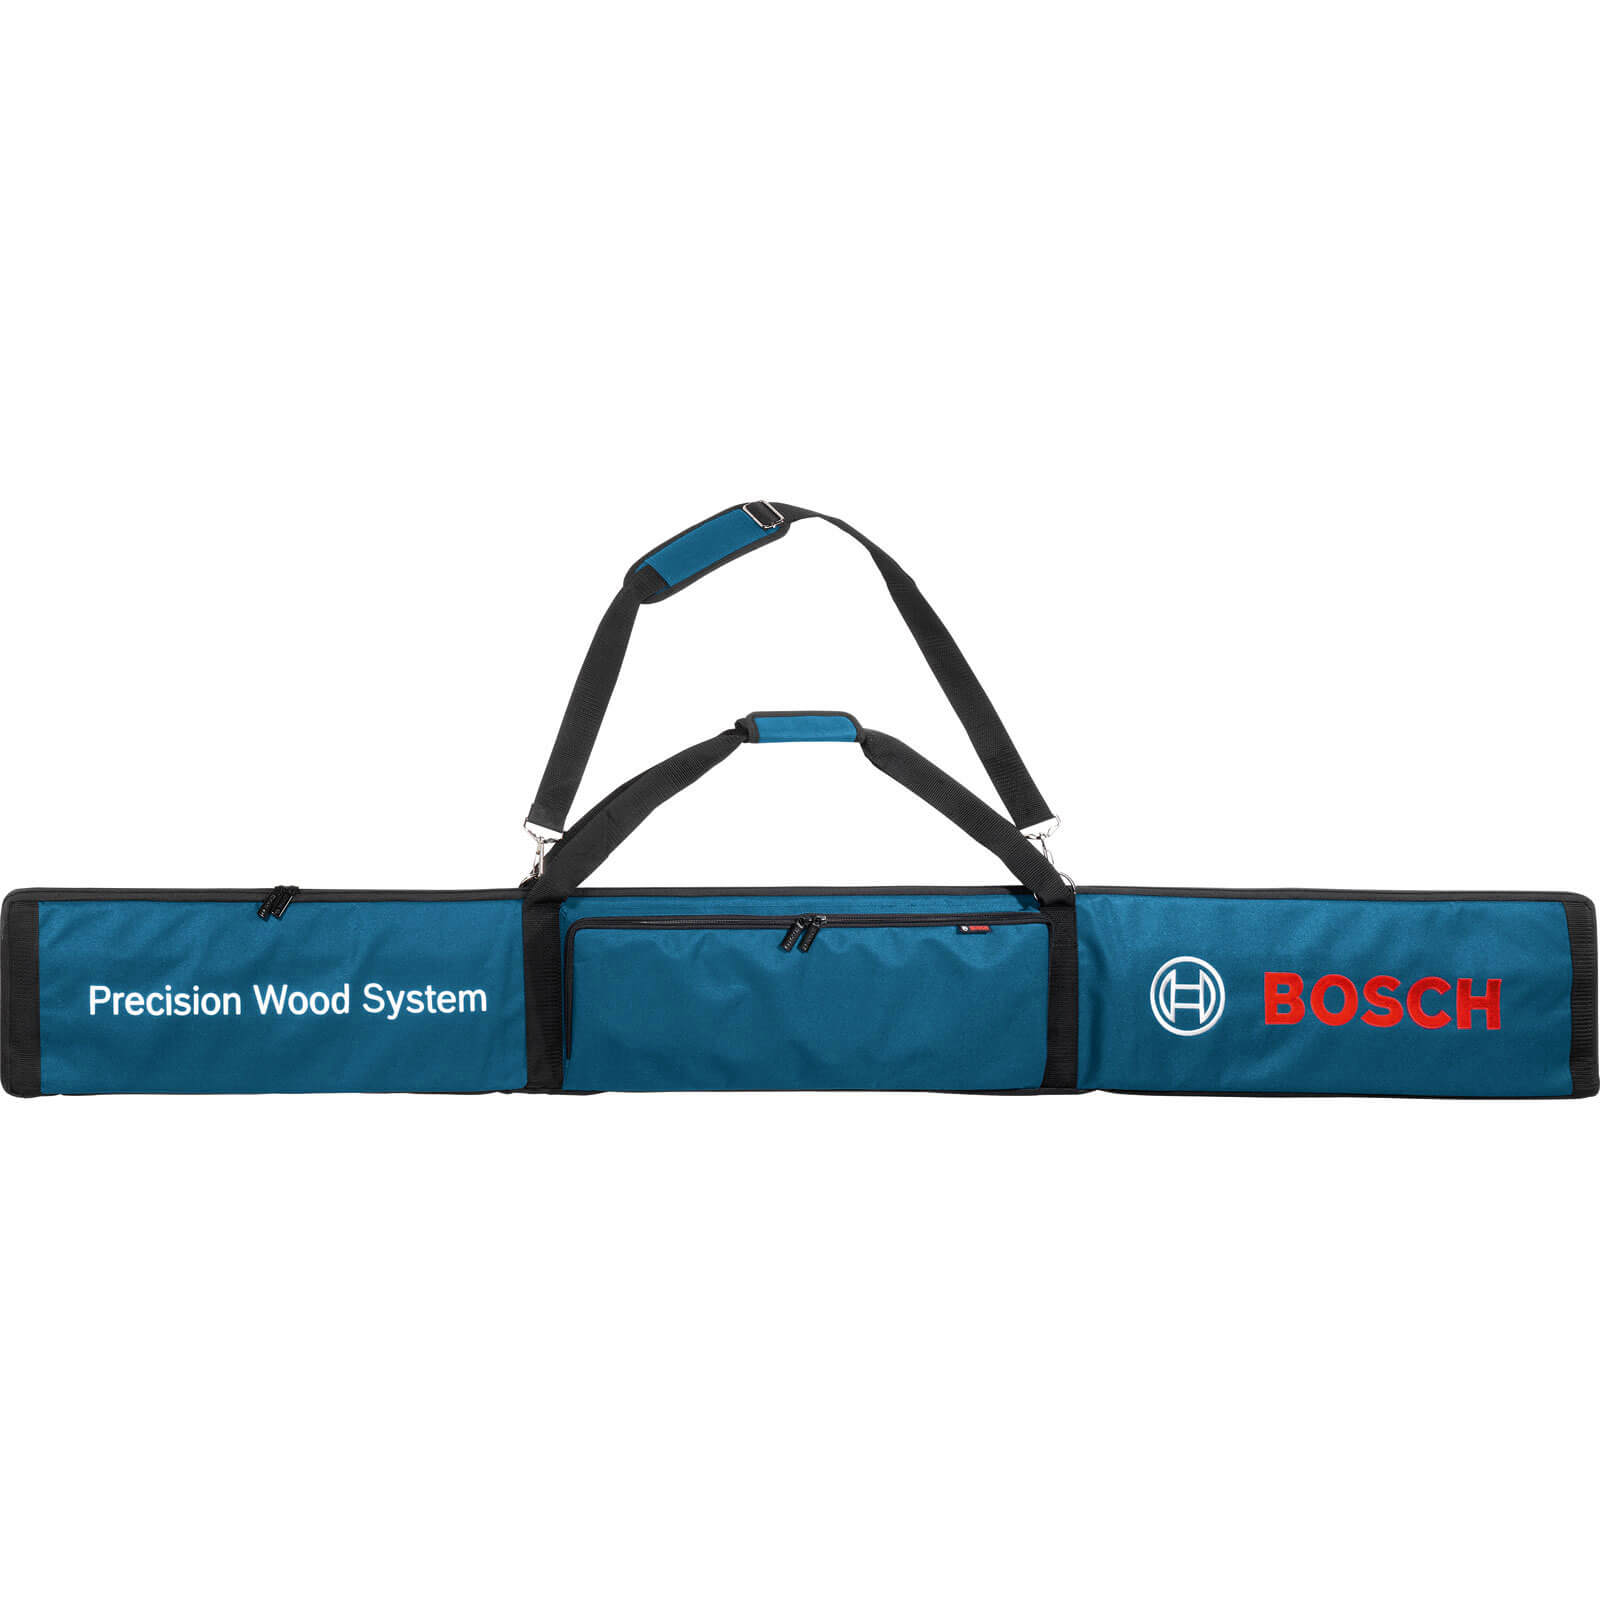 Image of Bosch Carry Bag for FSN Saw Guide Rails